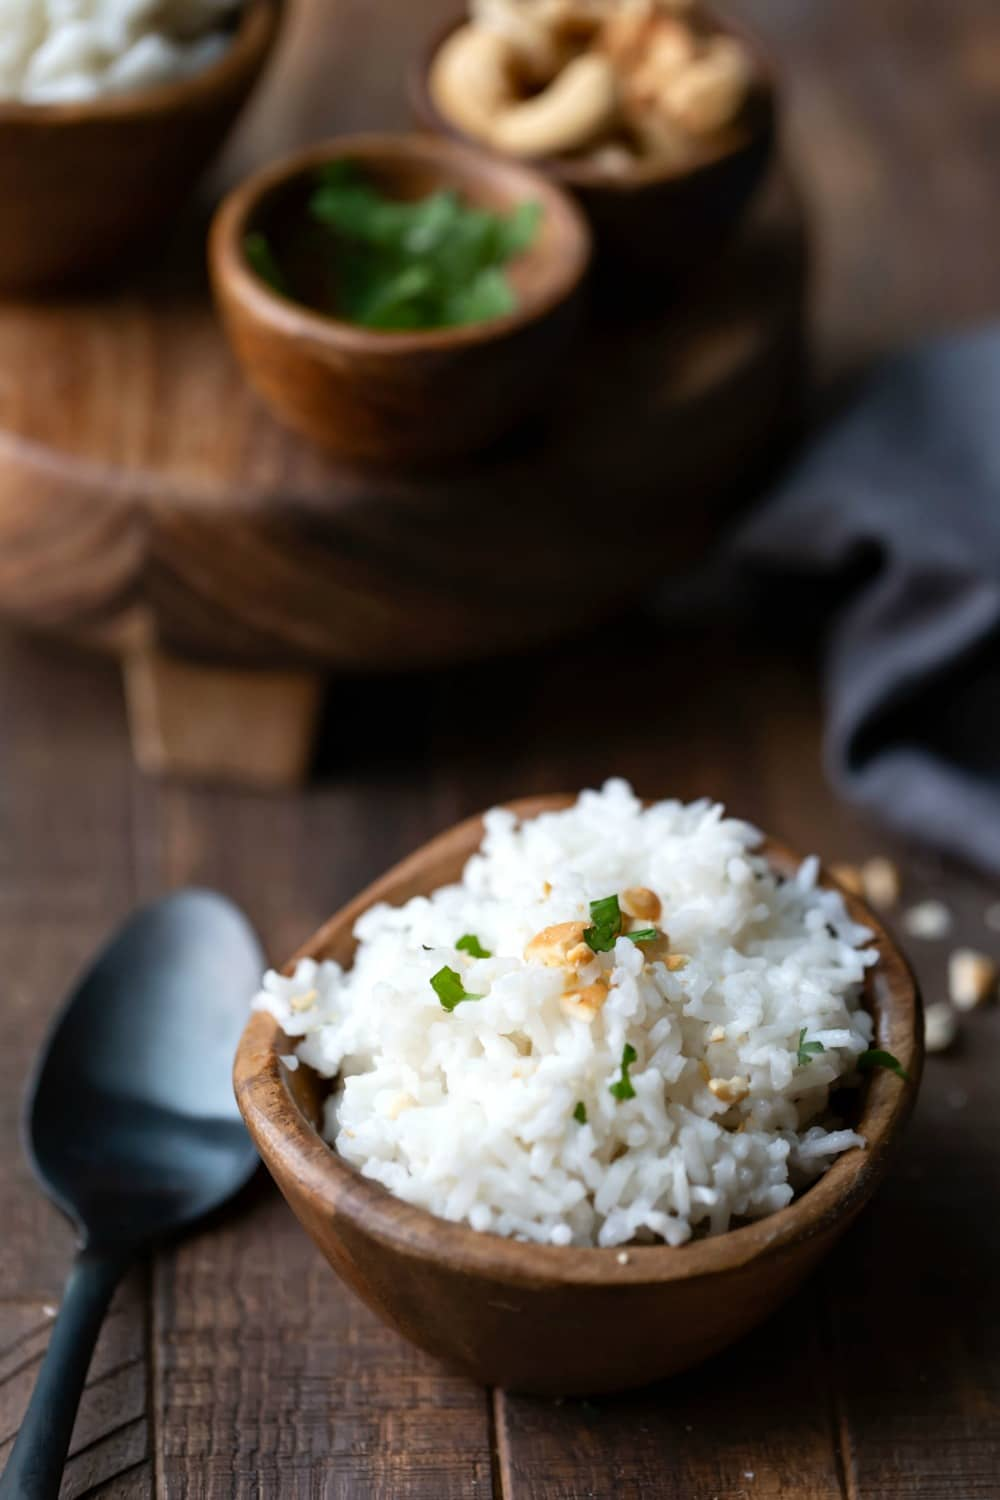 Coconut rice topped with cilantro and cashews